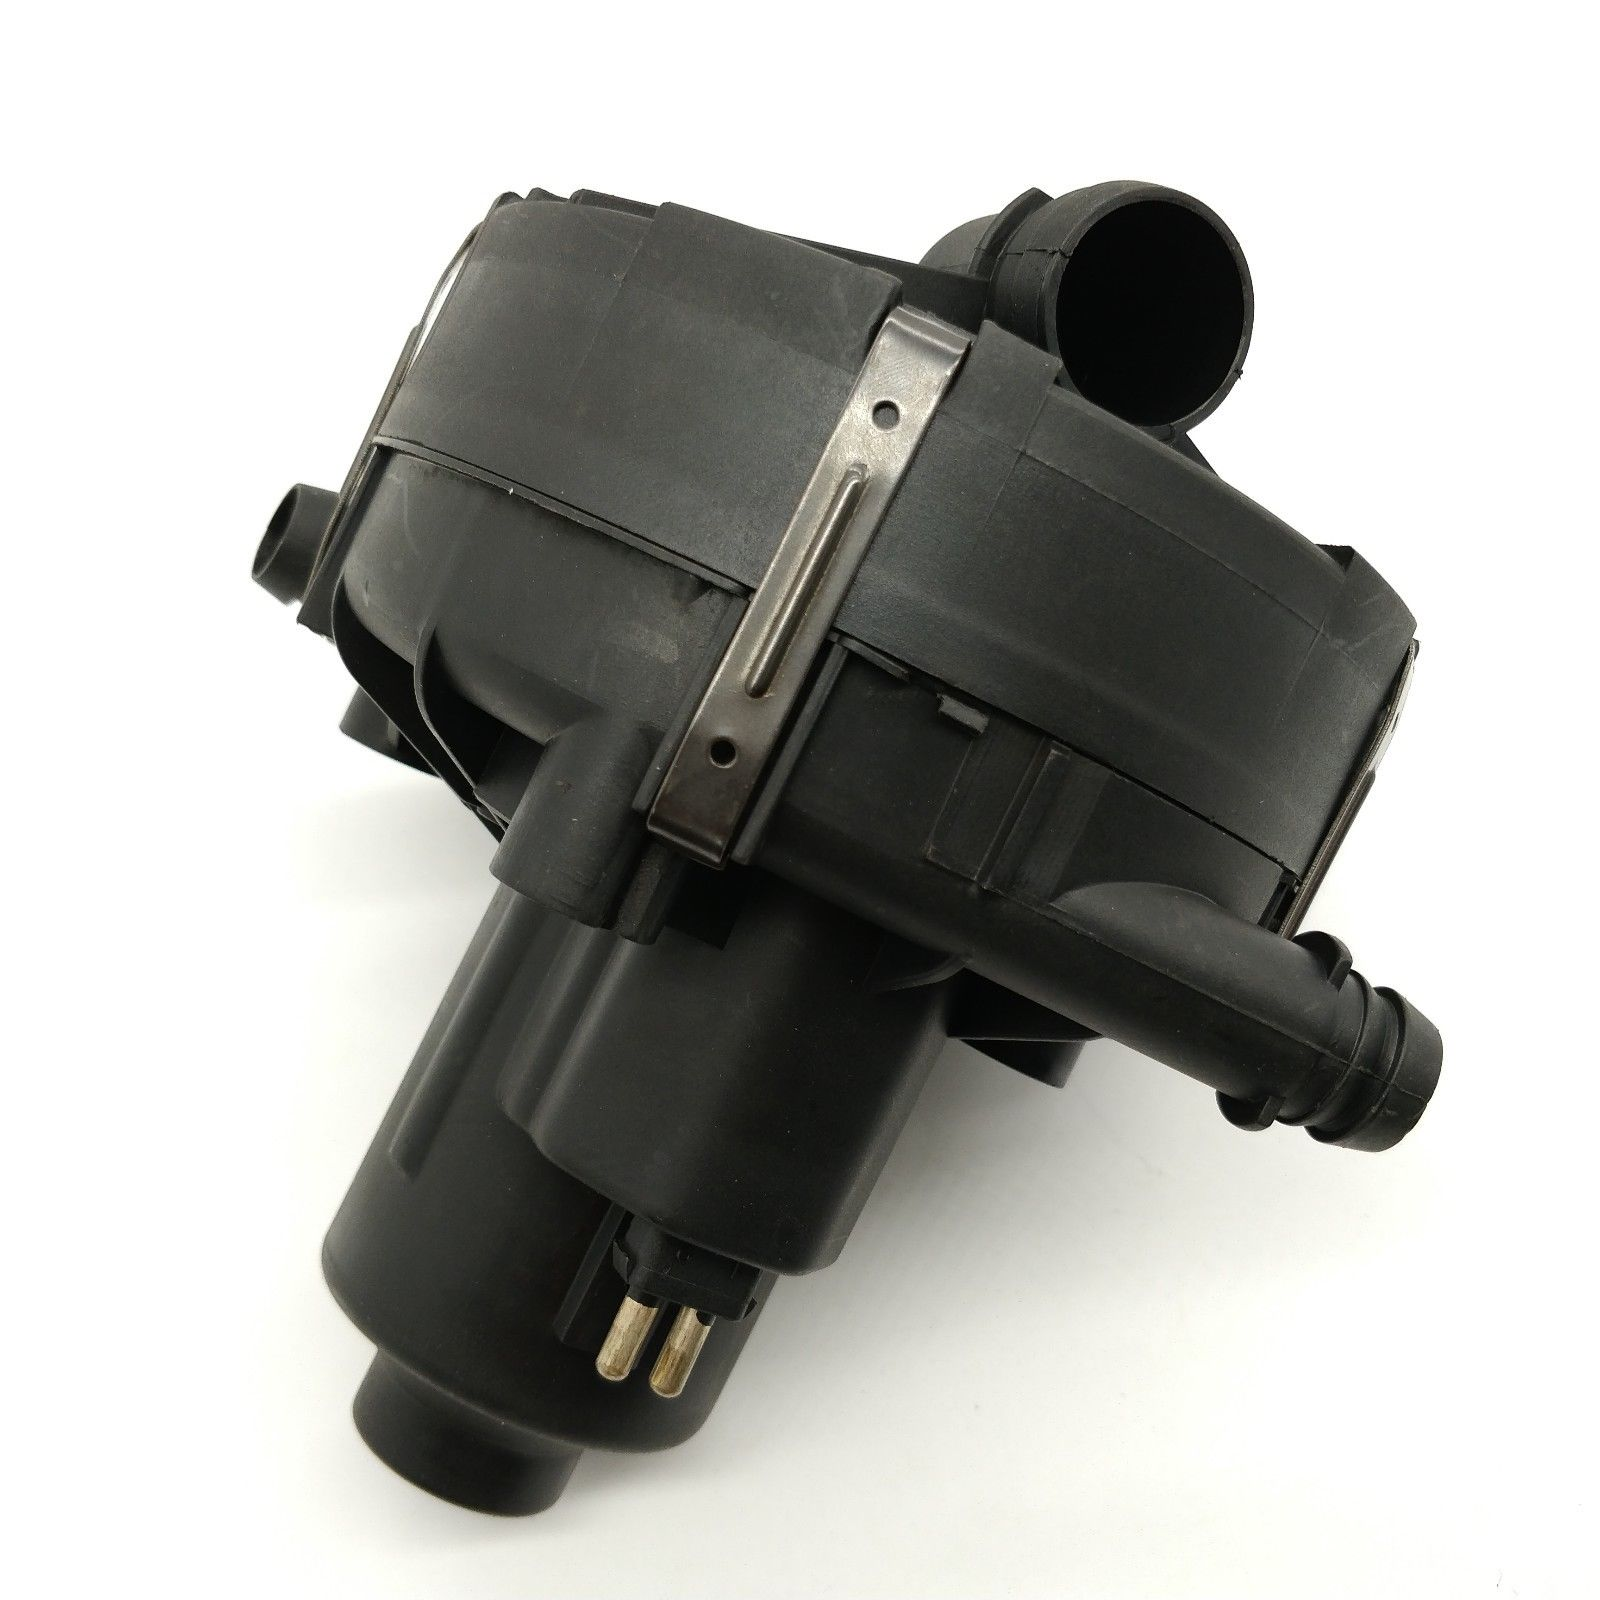 OKAY MOTOR Secondary Air Injection Pump for 01-05 Lincoln LS 3.0L 96-00 Ford Mustang CX-1718